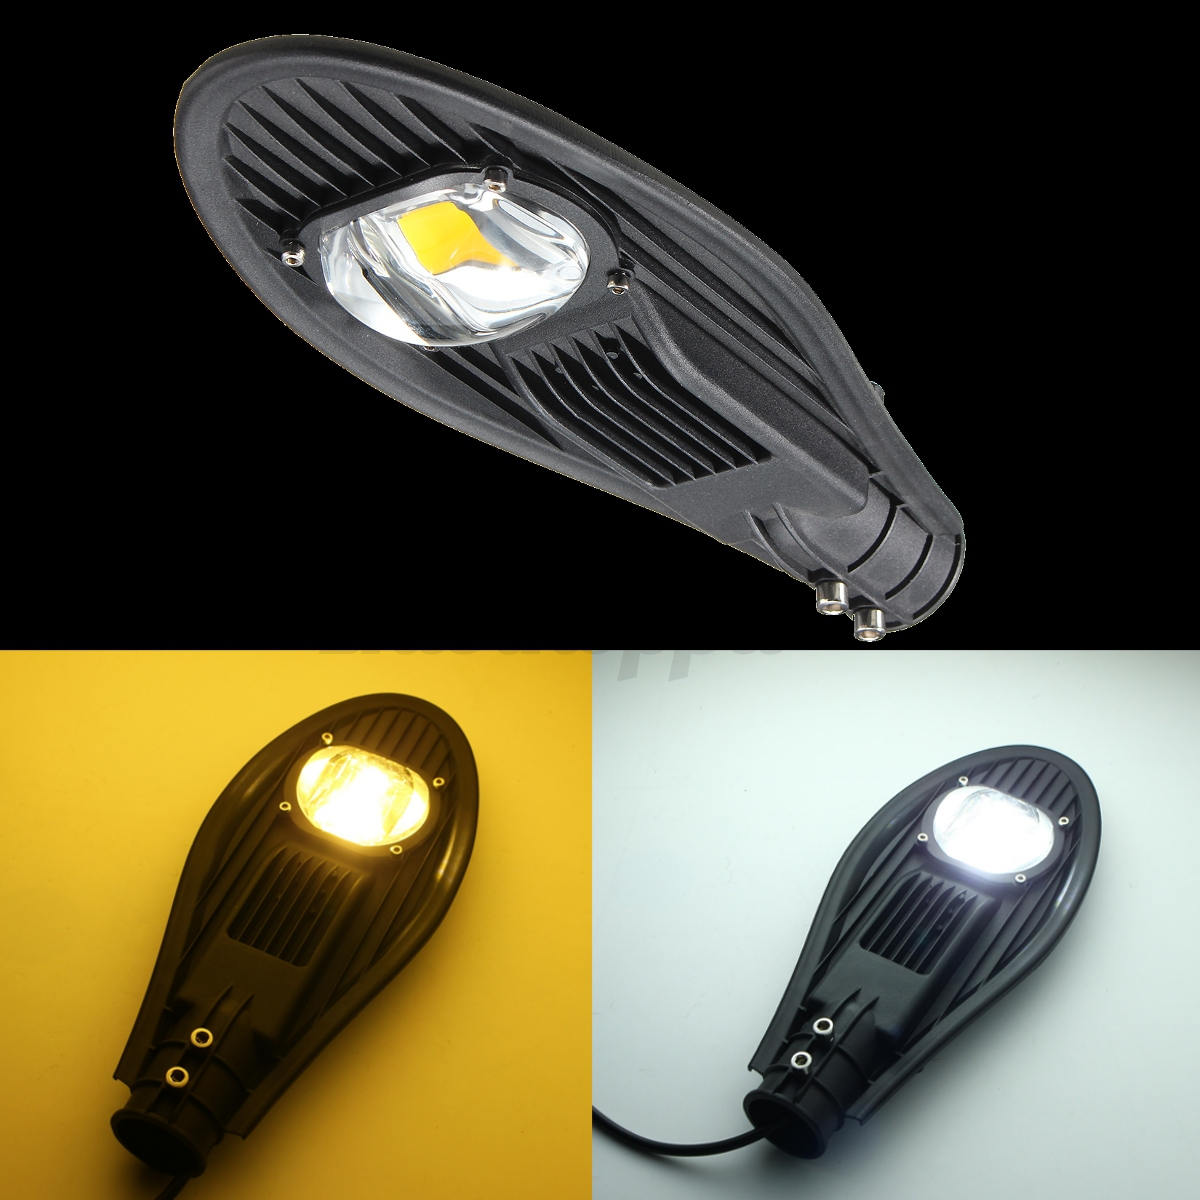 20w 30w led road street flood light industrial lamp outdoor garden yard 12v 110v ebay. Black Bedroom Furniture Sets. Home Design Ideas